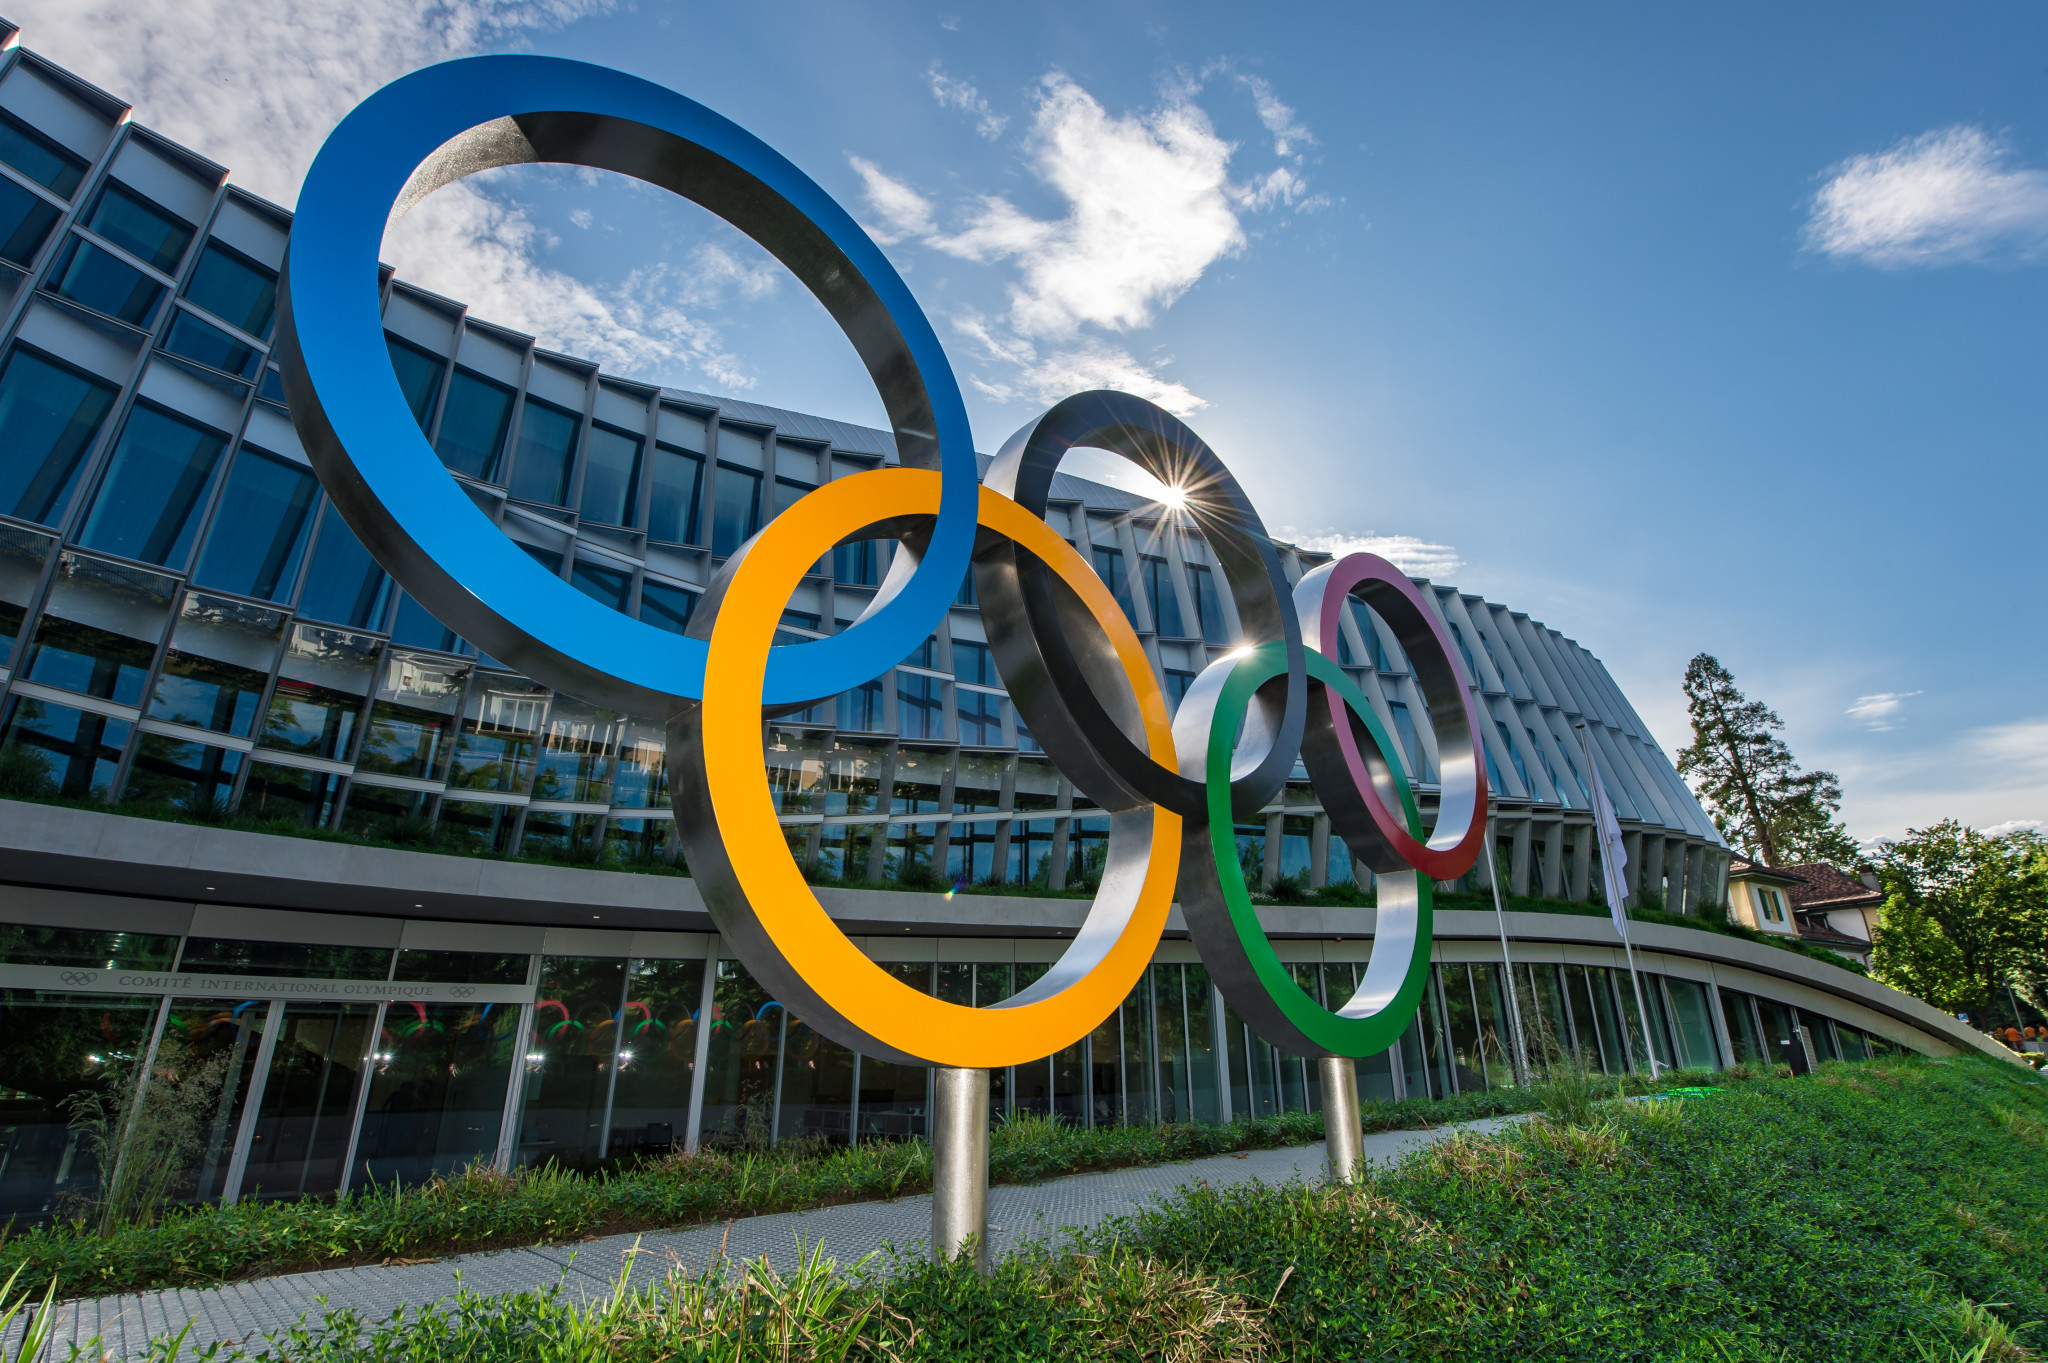 IOC to increase staffing level at Olympic House as COVID-19 restrictions ease